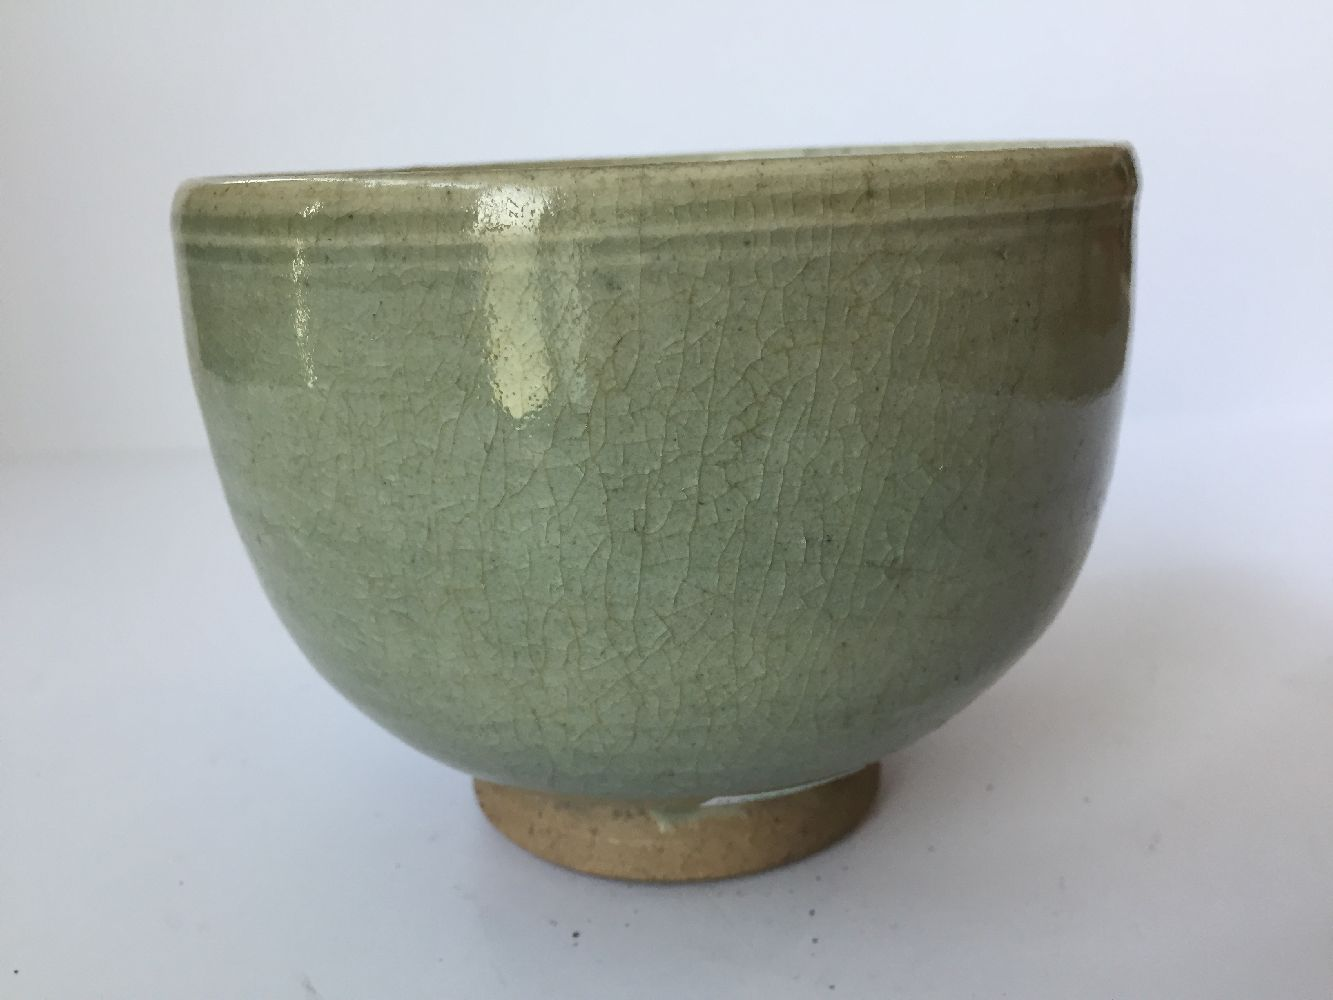 Three Thai Sawankhalok bowls, 15th-16th century, each covered in a celadon glaze, two with fluted - Image 12 of 27